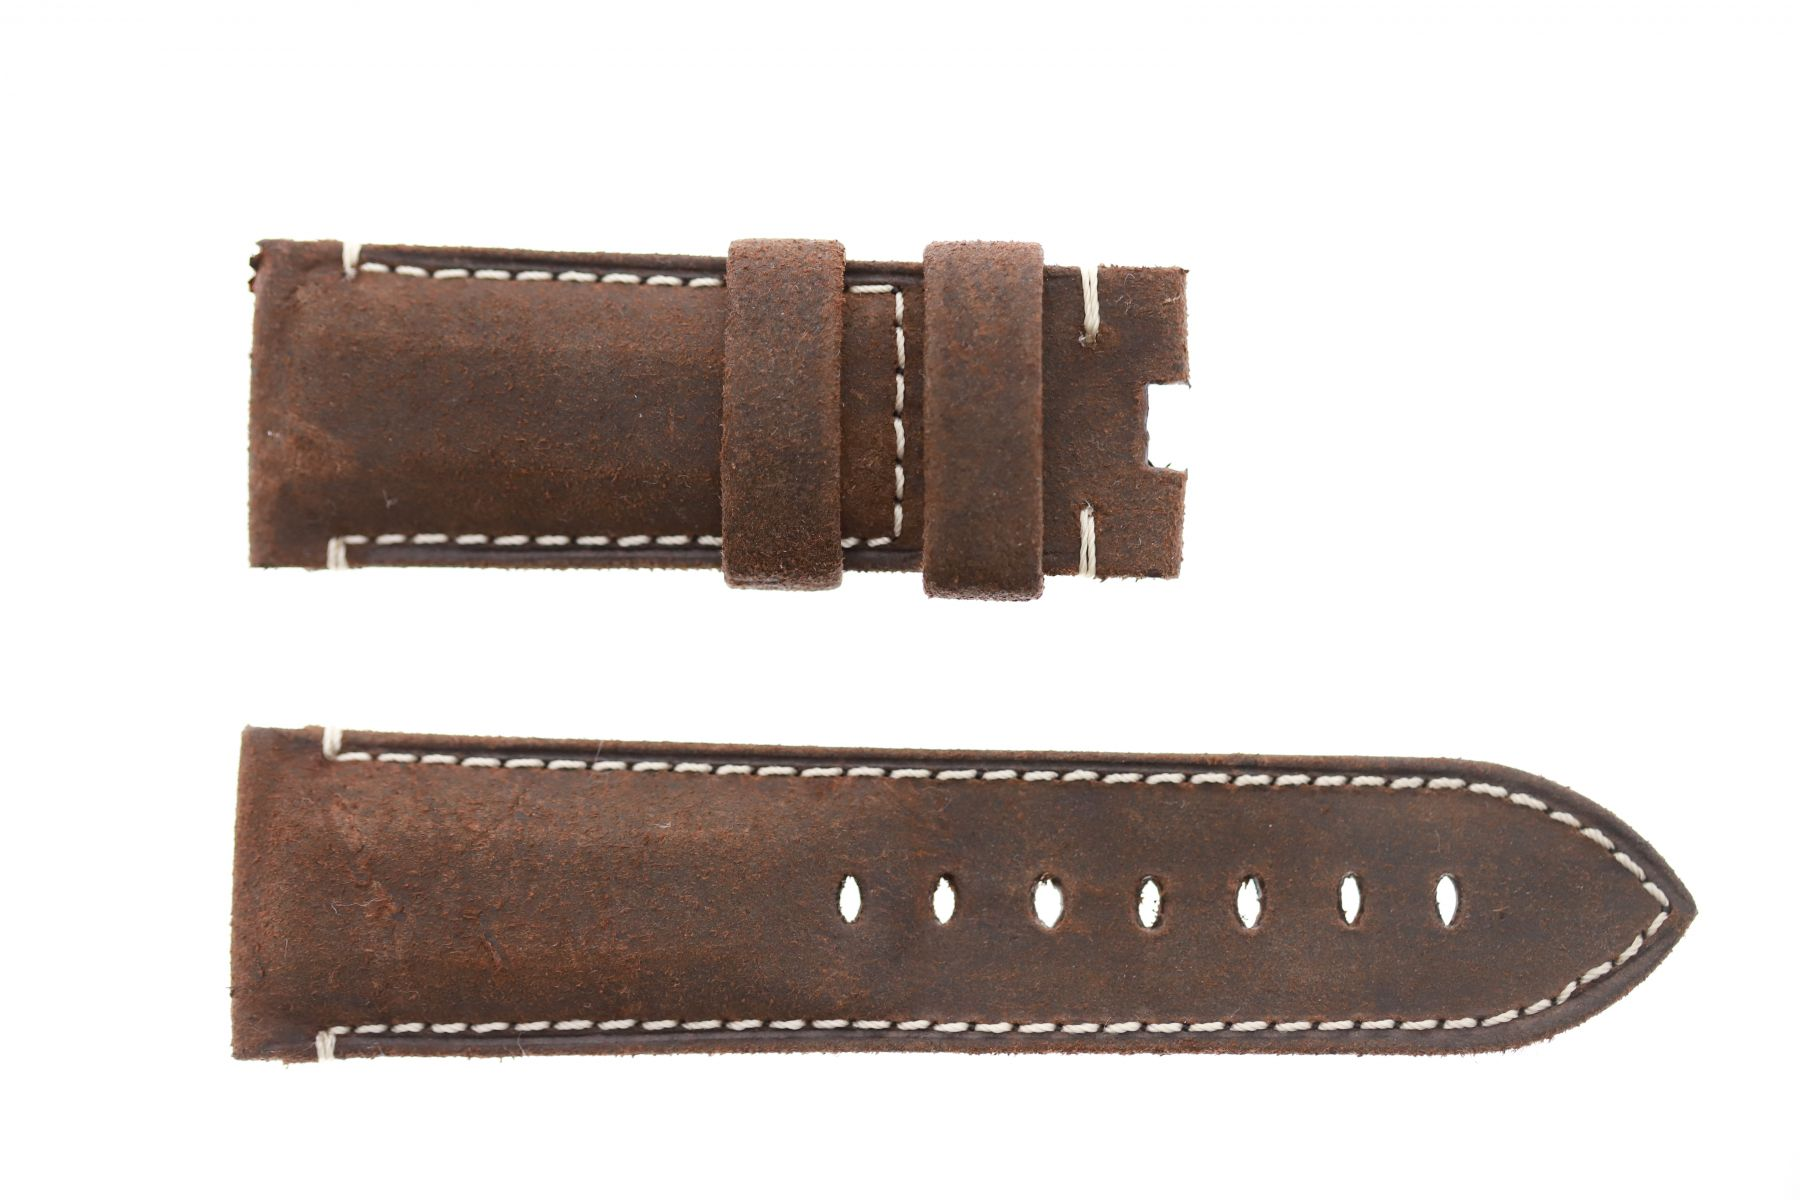 Panerai style 26mm strap in Brown Vintage Mohawk leather. Folded edges